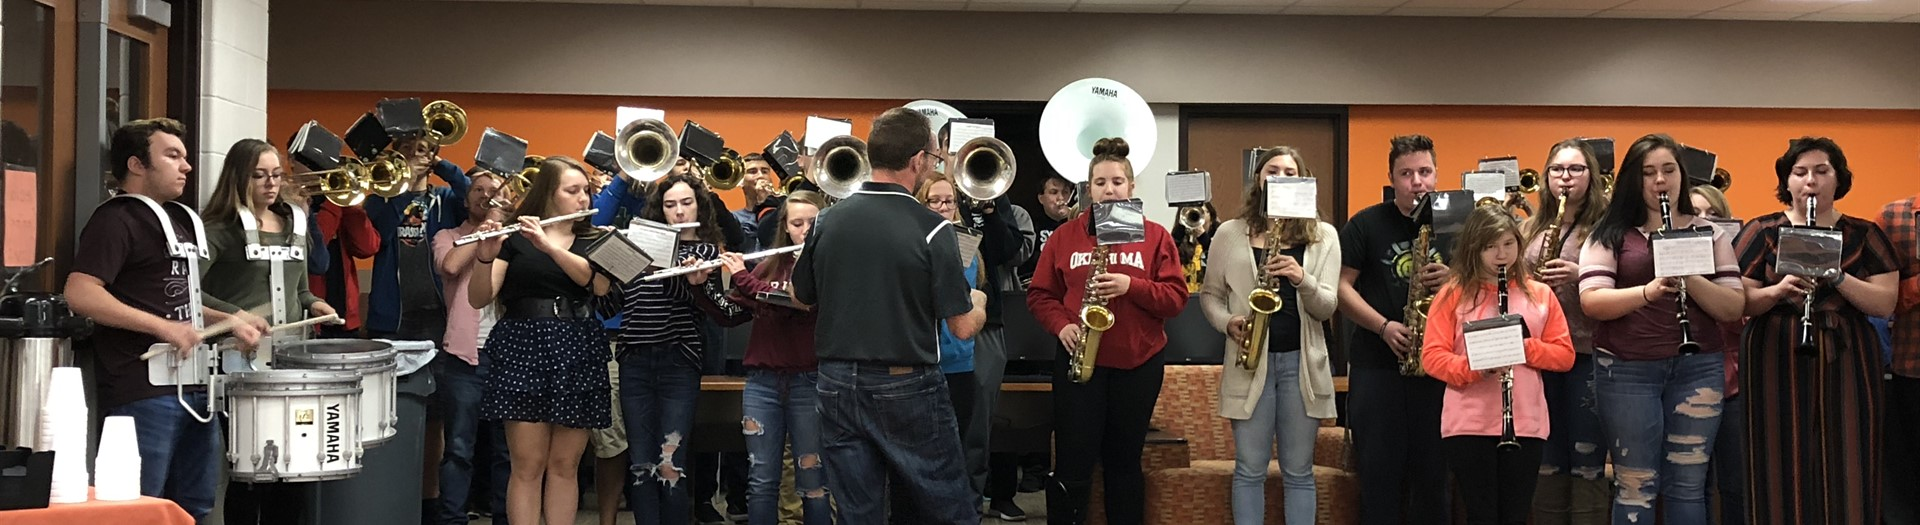 "HHS band playing an impromptu set in the Media Center for the Homer ""All In"" breakfast!"